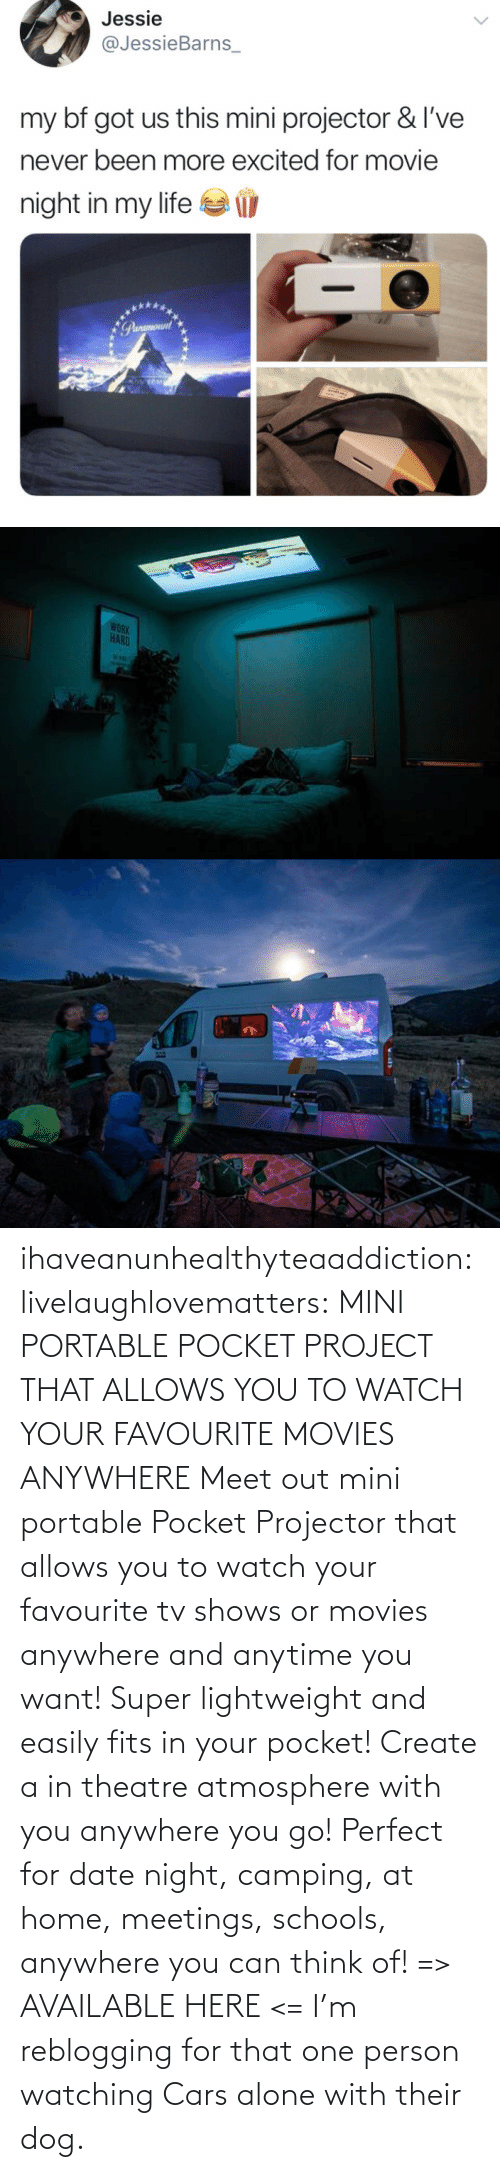 That One Person: ihaveanunhealthyteaaddiction:  livelaughlovematters: MINI PORTABLE POCKET PROJECT THAT ALLOWS YOU TO WATCH YOUR FAVOURITE MOVIES ANYWHERE Meet out mini portable Pocket Projector that allows you to watch your favourite tv shows or movies anywhere and anytime you want! Super lightweight and easily fits in your pocket! Create a in theatre atmosphere with you anywhere you go! Perfect for date night, camping, at home, meetings, schools, anywhere you can think of! => AVAILABLE HERE <=    I'm reblogging for that one person watching Cars alone with their dog.